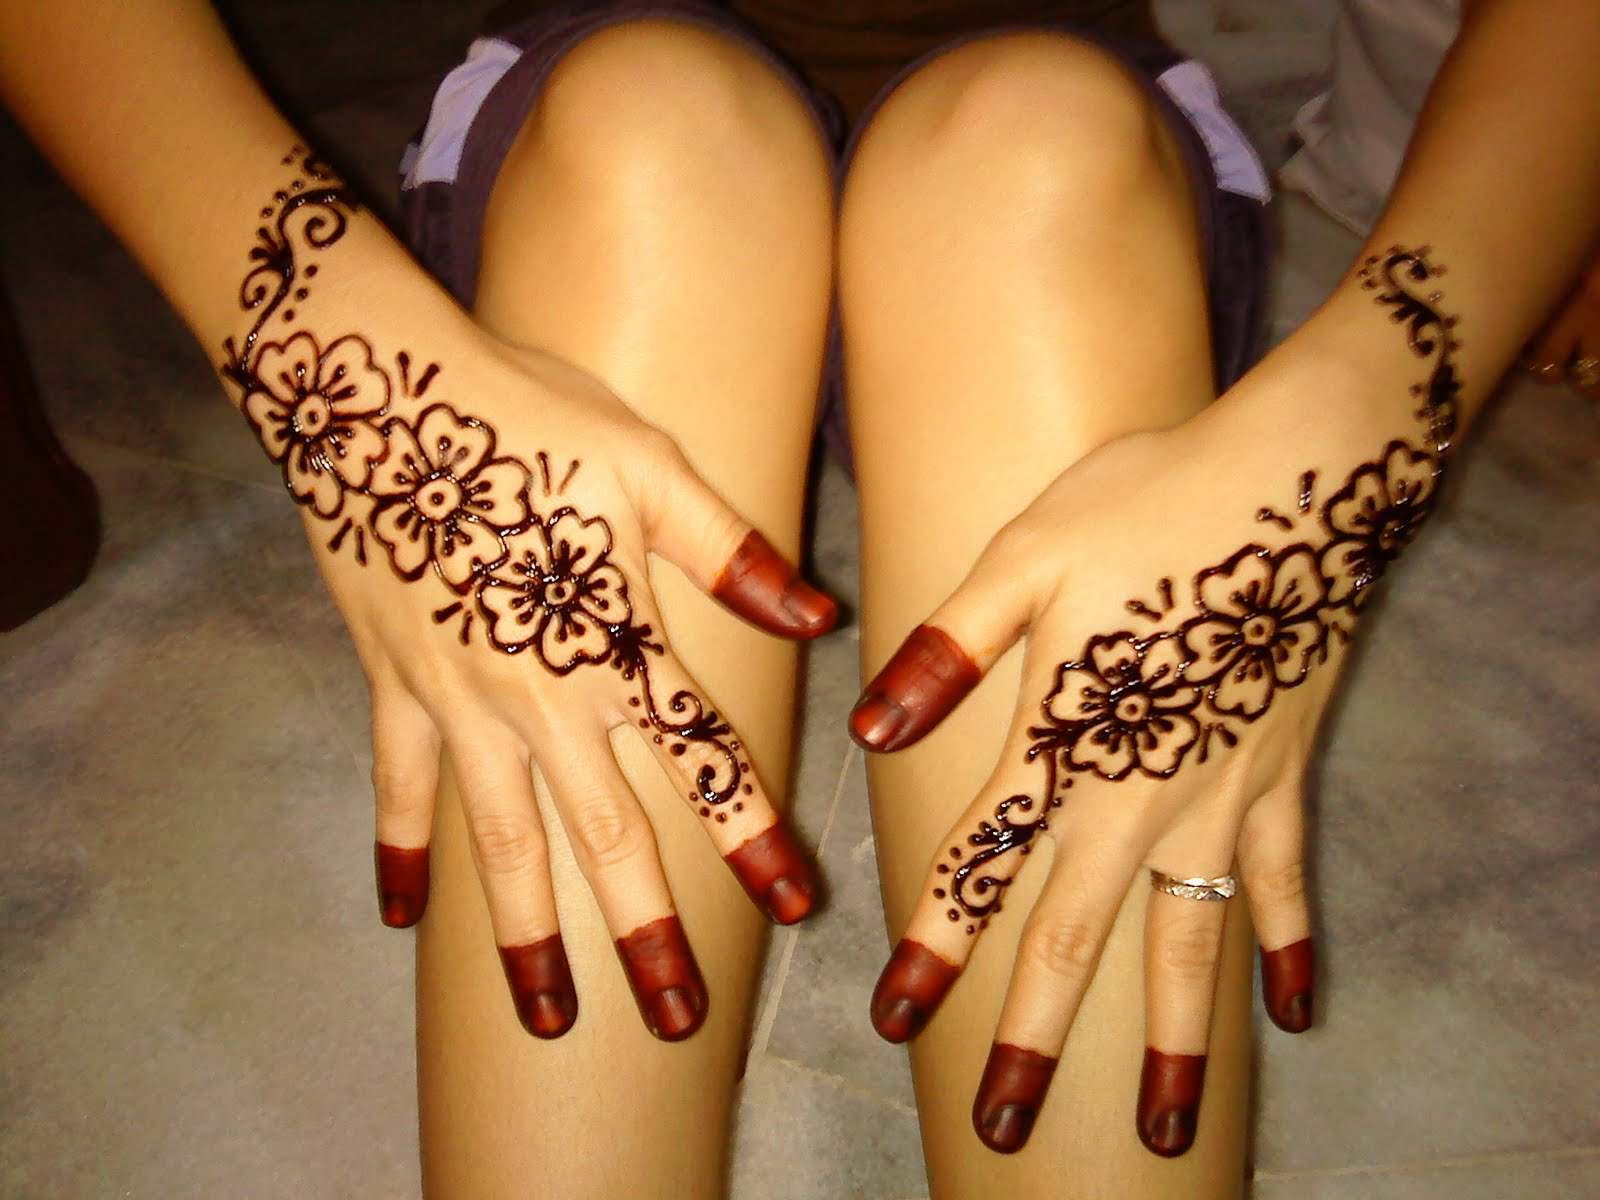 Top Henna Inai Ukiran Pengantin Tattoo Tattoo39s In Lists For Pinterest